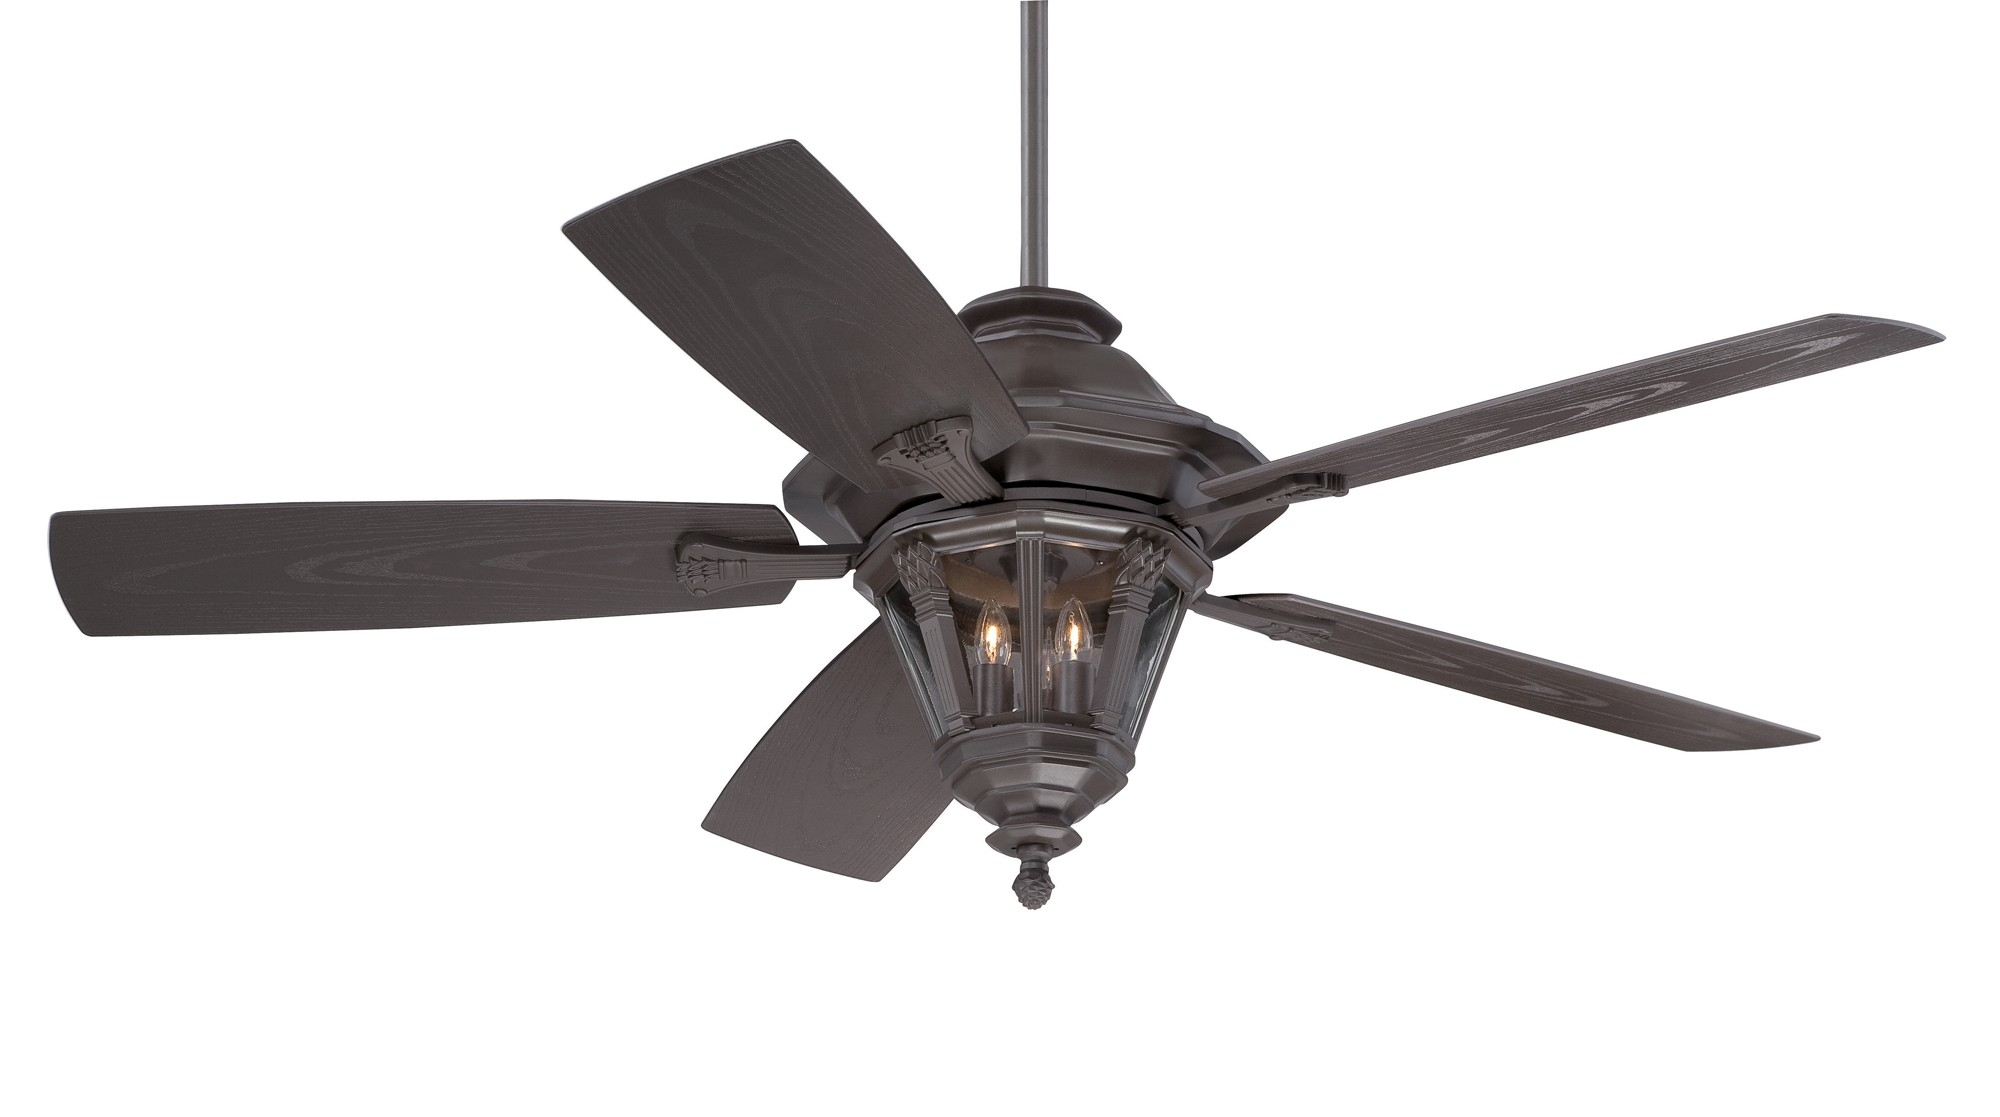 Outdoor Ceiling Fans With Wet Rated Lights Regarding Preferred Ceiling Fans : Ceiling Fan With Remote Industrial Fans Wet Location (View 12 of 20)